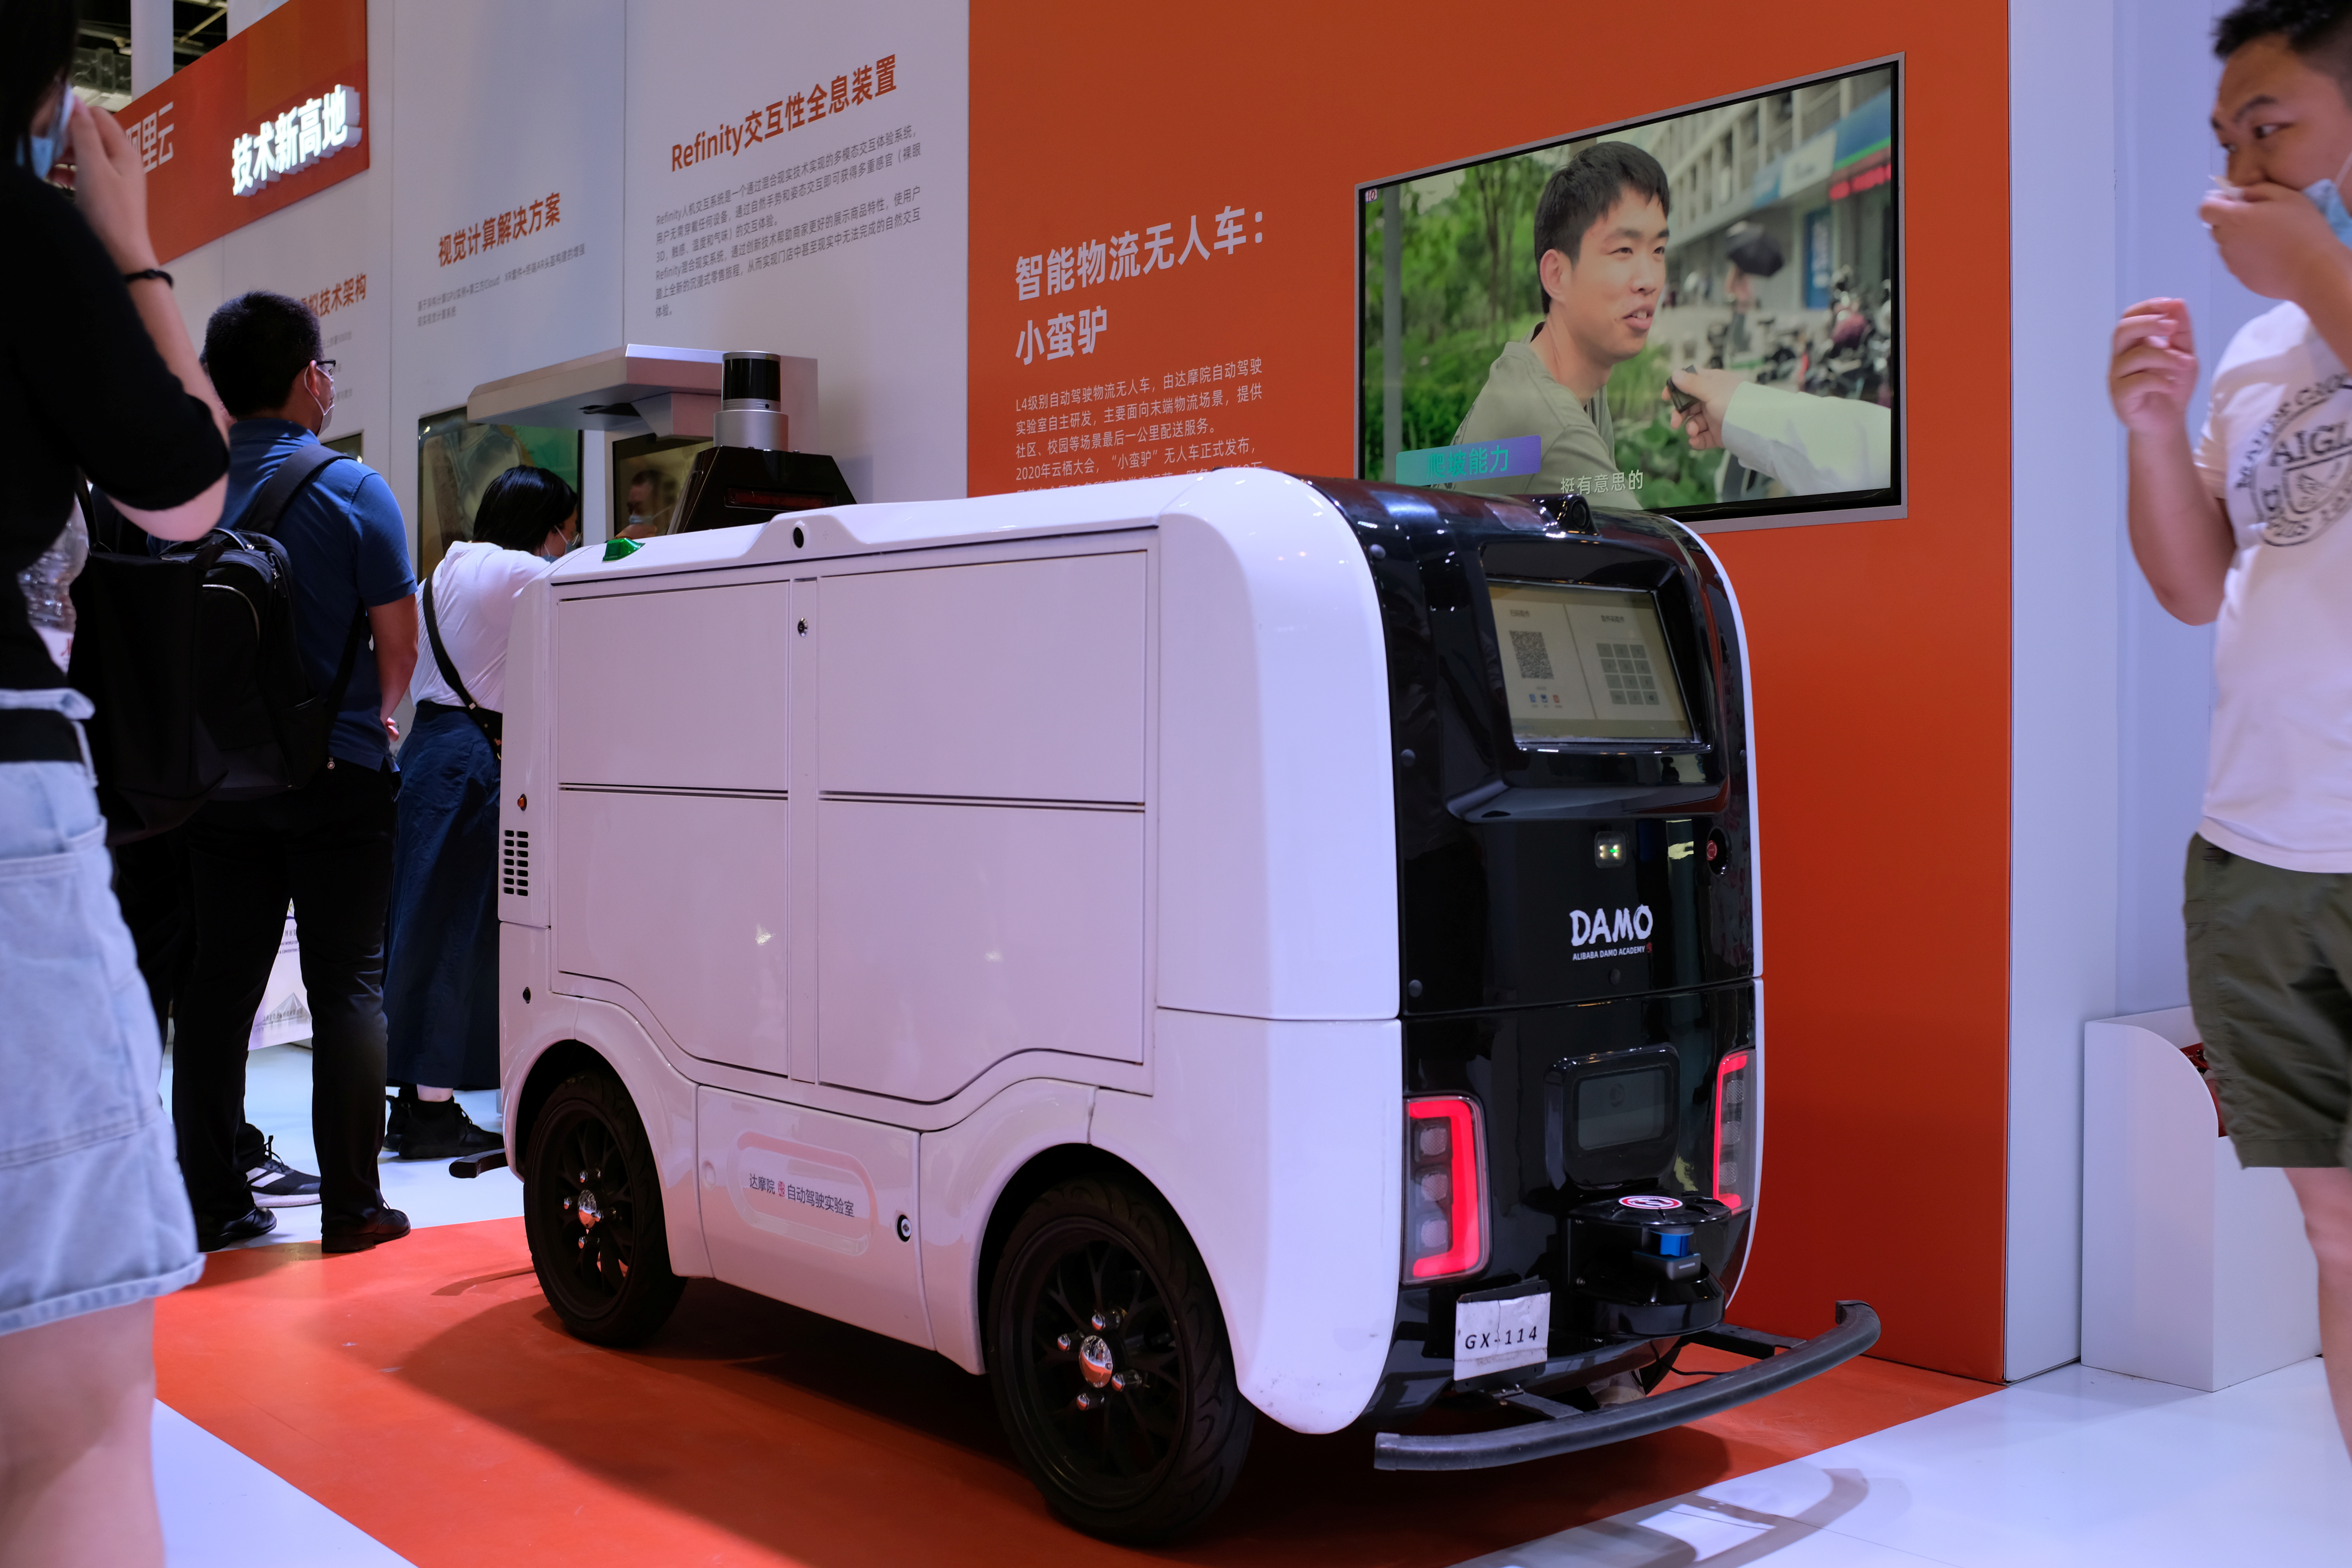 An autonomous delivery vehicle by Damo is displayed at the World Artificial Intelligence Conference (WAIC) in Shanghai, China July 8, 2021. REUTERS/Yilei Sun